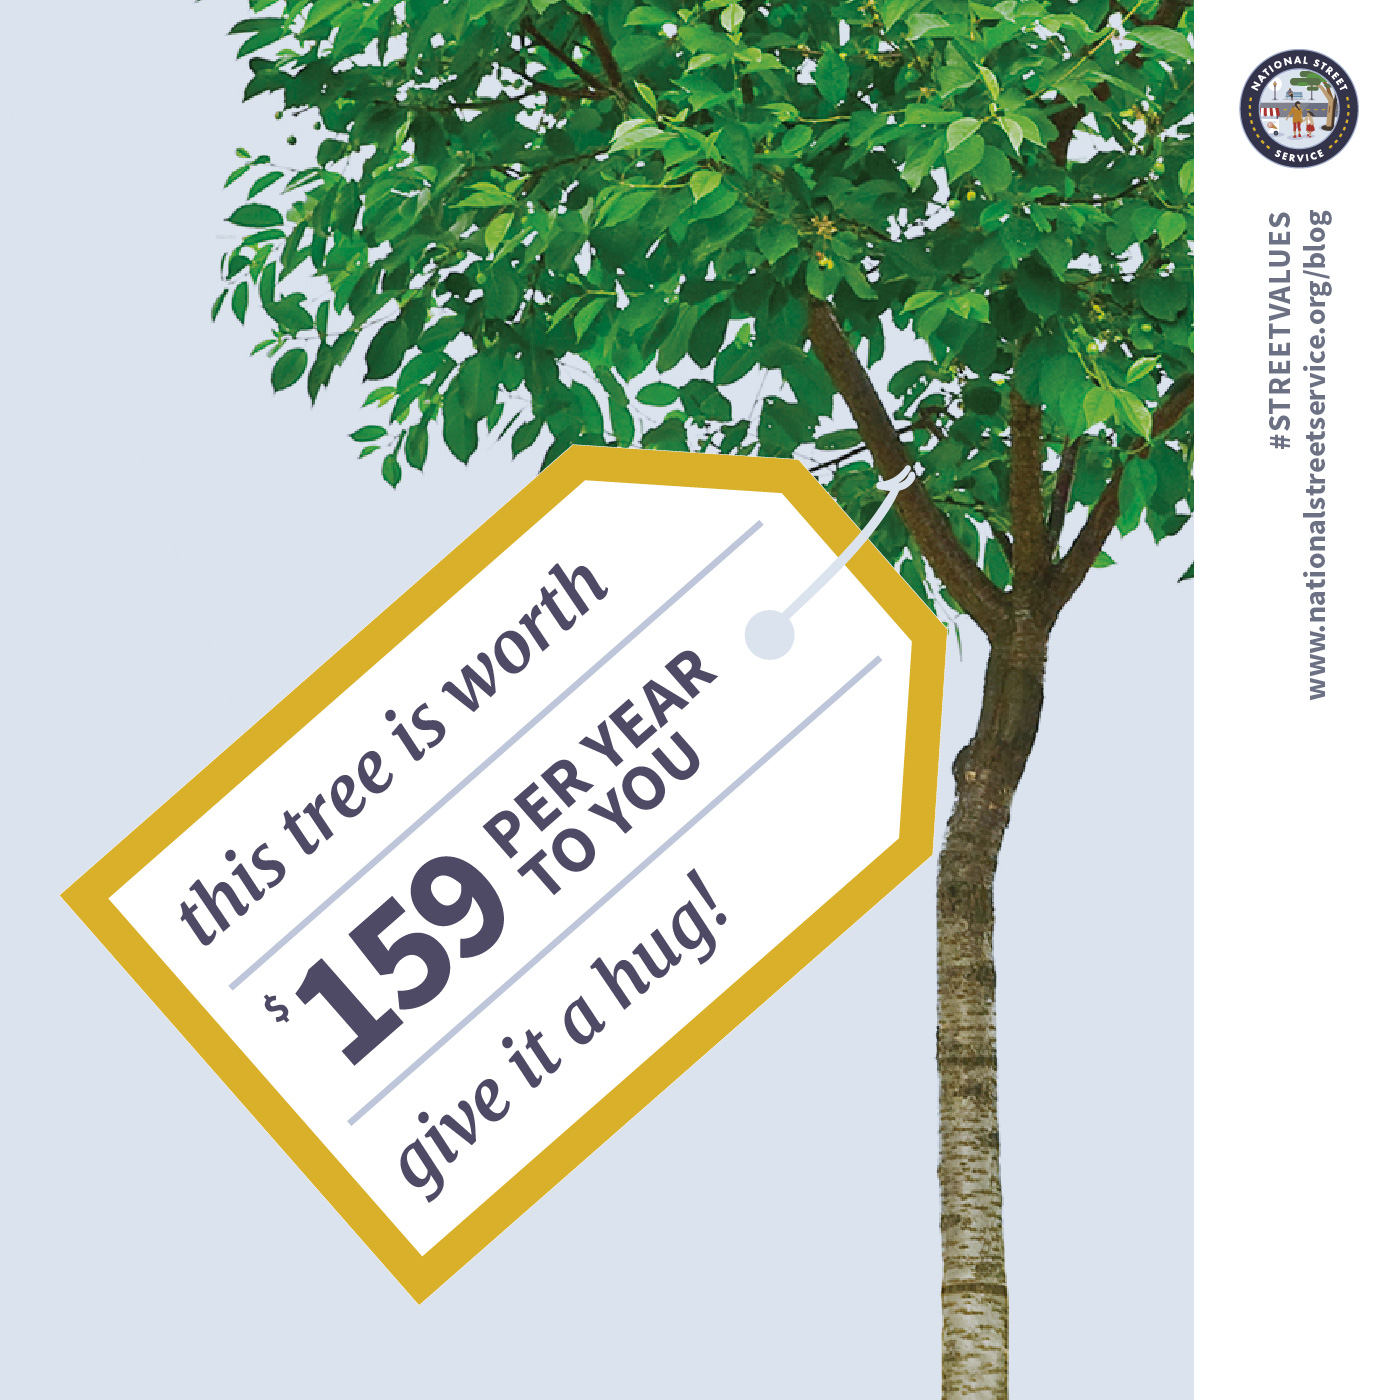 A single public tree provides an annual benefit of  $158.80